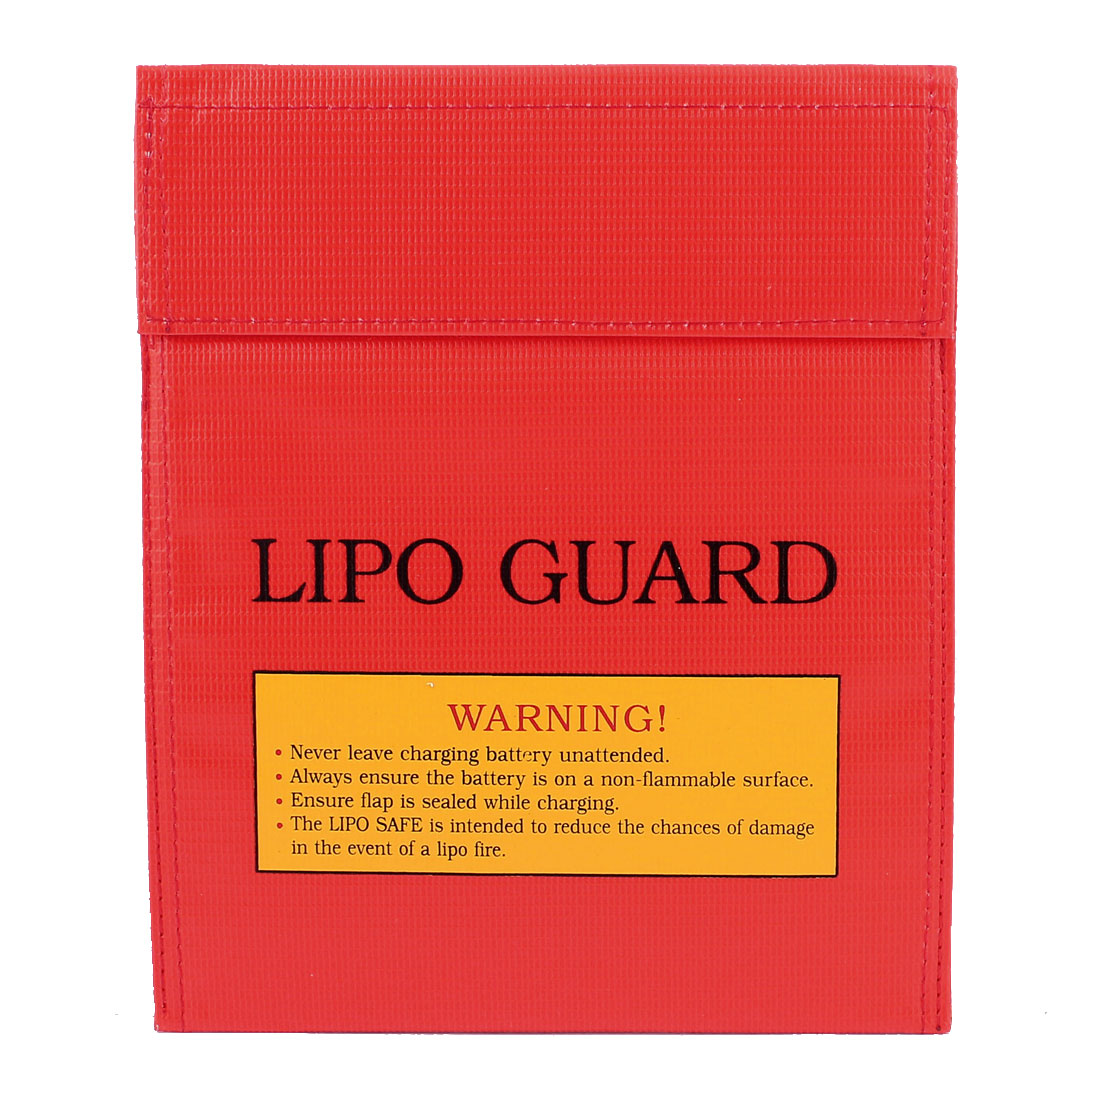 18cm x 22cm Red RC LiPo Battery Safety Guard Fireproof Charging Bag